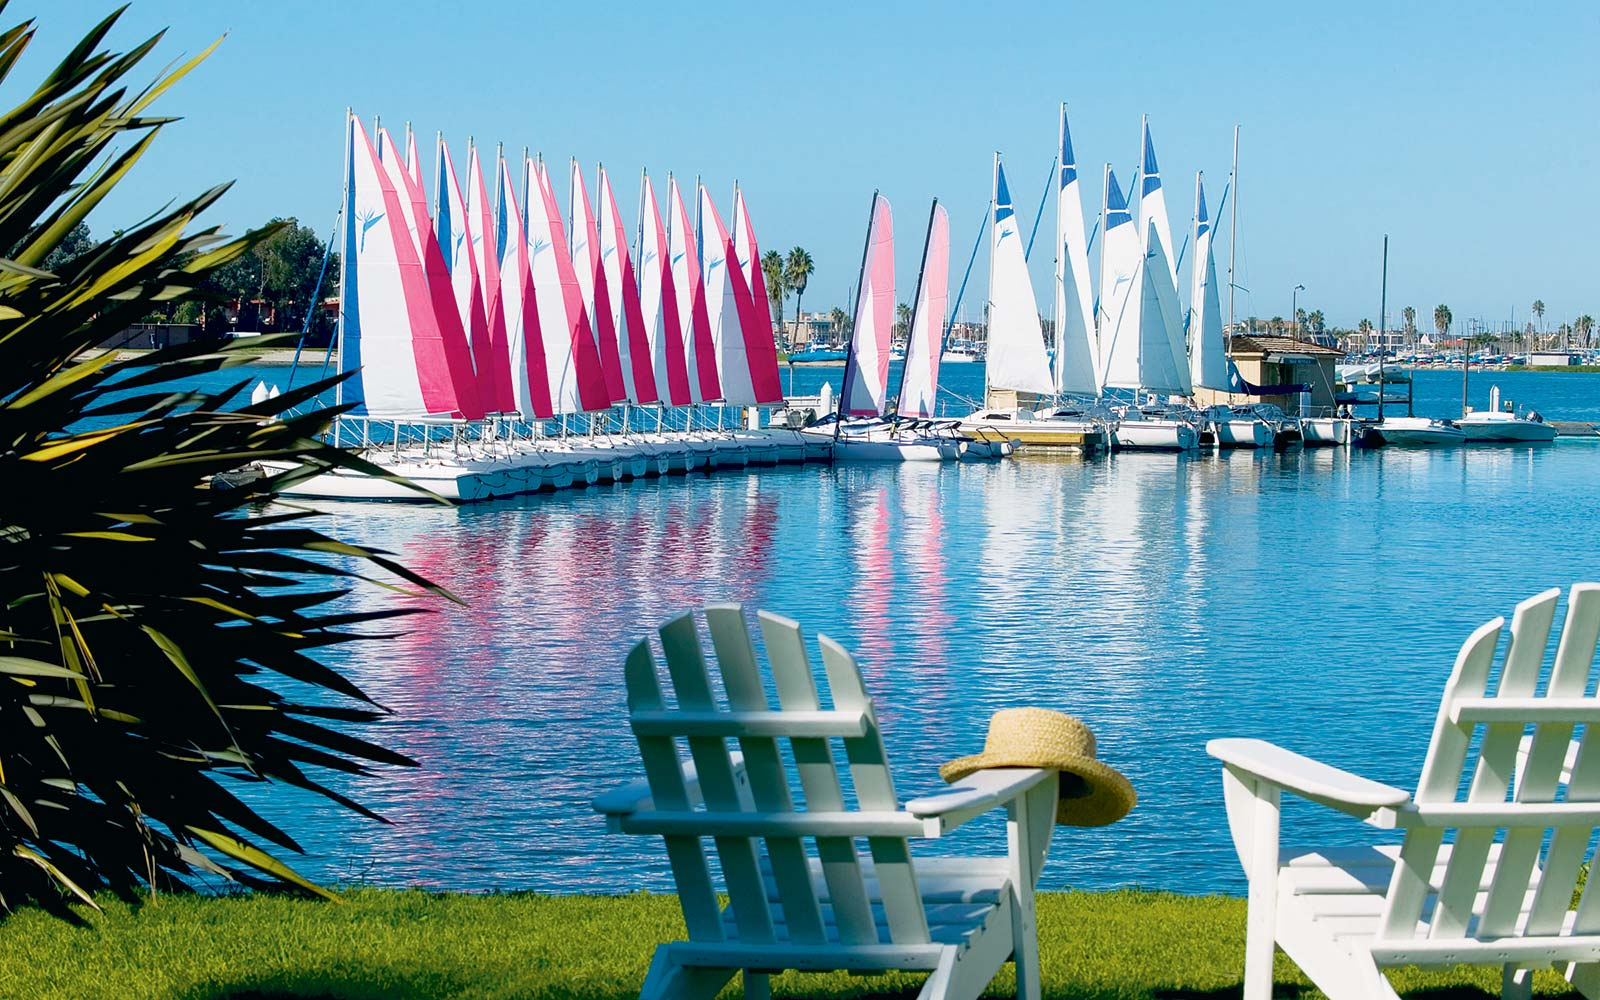 30% Off a 3-night Stay at the Paradise Point Resort in San Diego